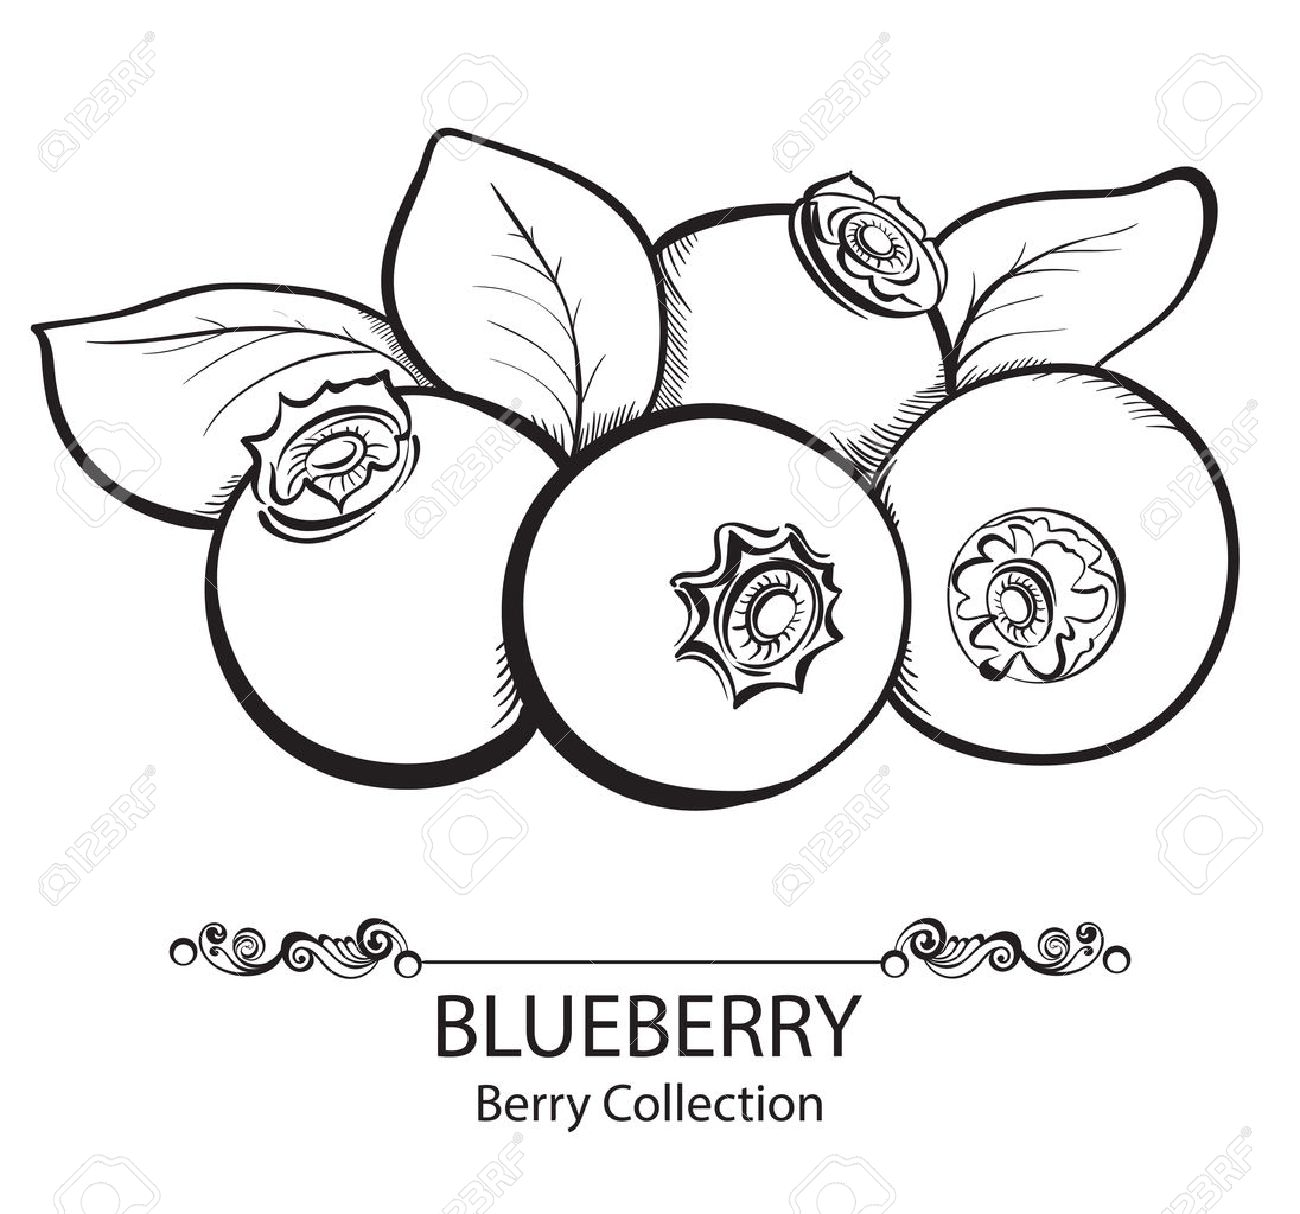 berry clipart black and white #3